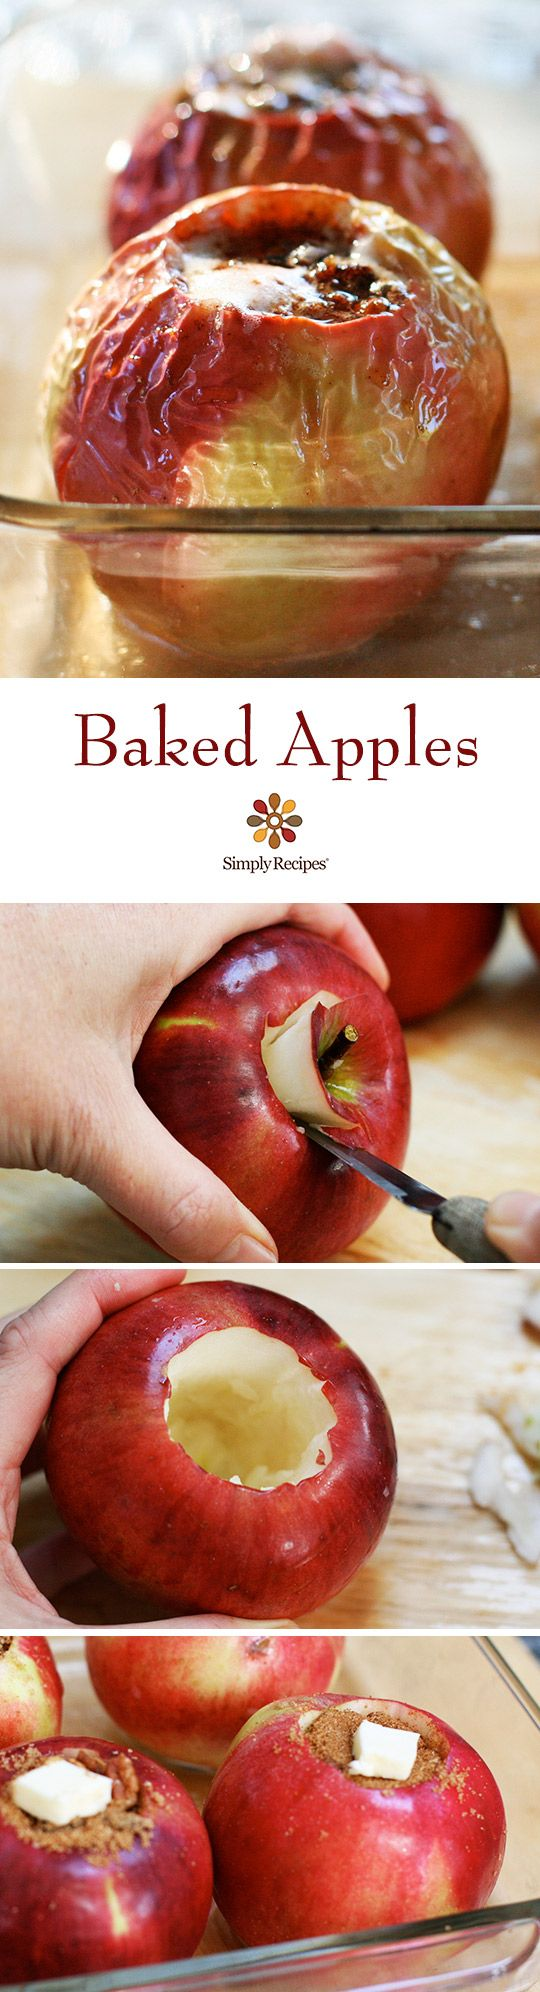 Classic baked apples filled with pecans, cinnamon, raisins, butter, and brown sugar. Perfect fall dessert! On SimplyRecipes.com